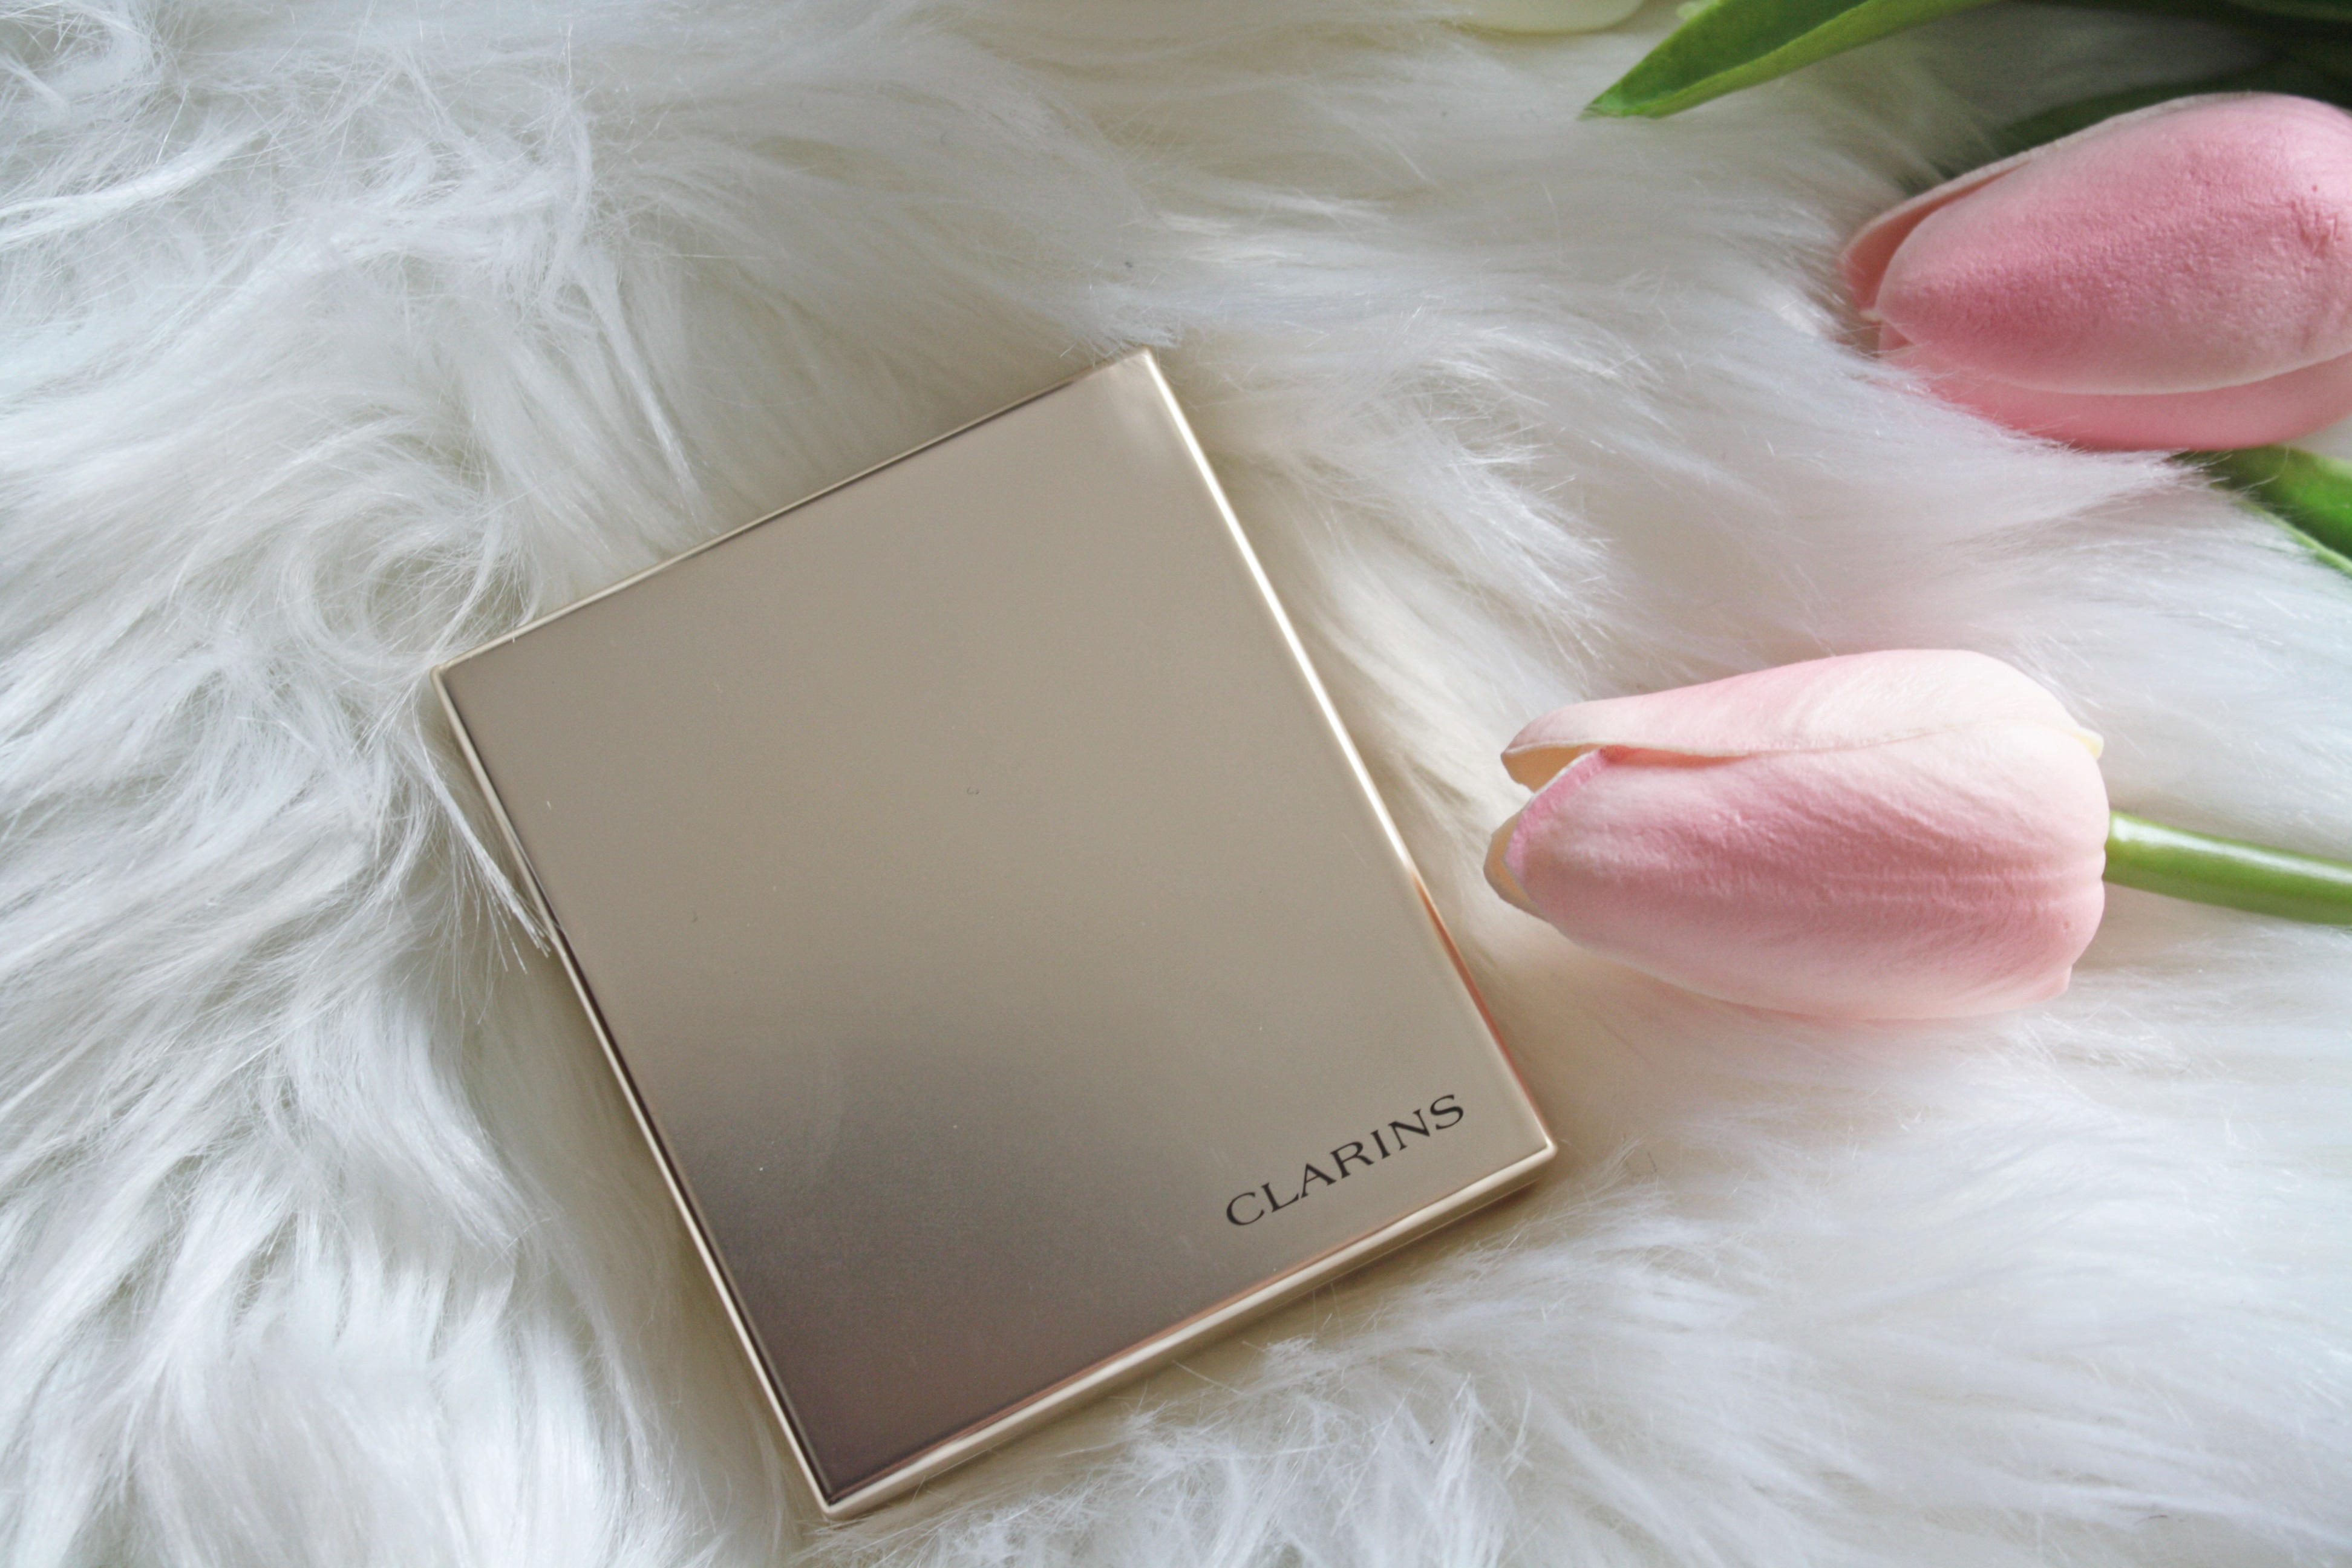 Poudre clarins